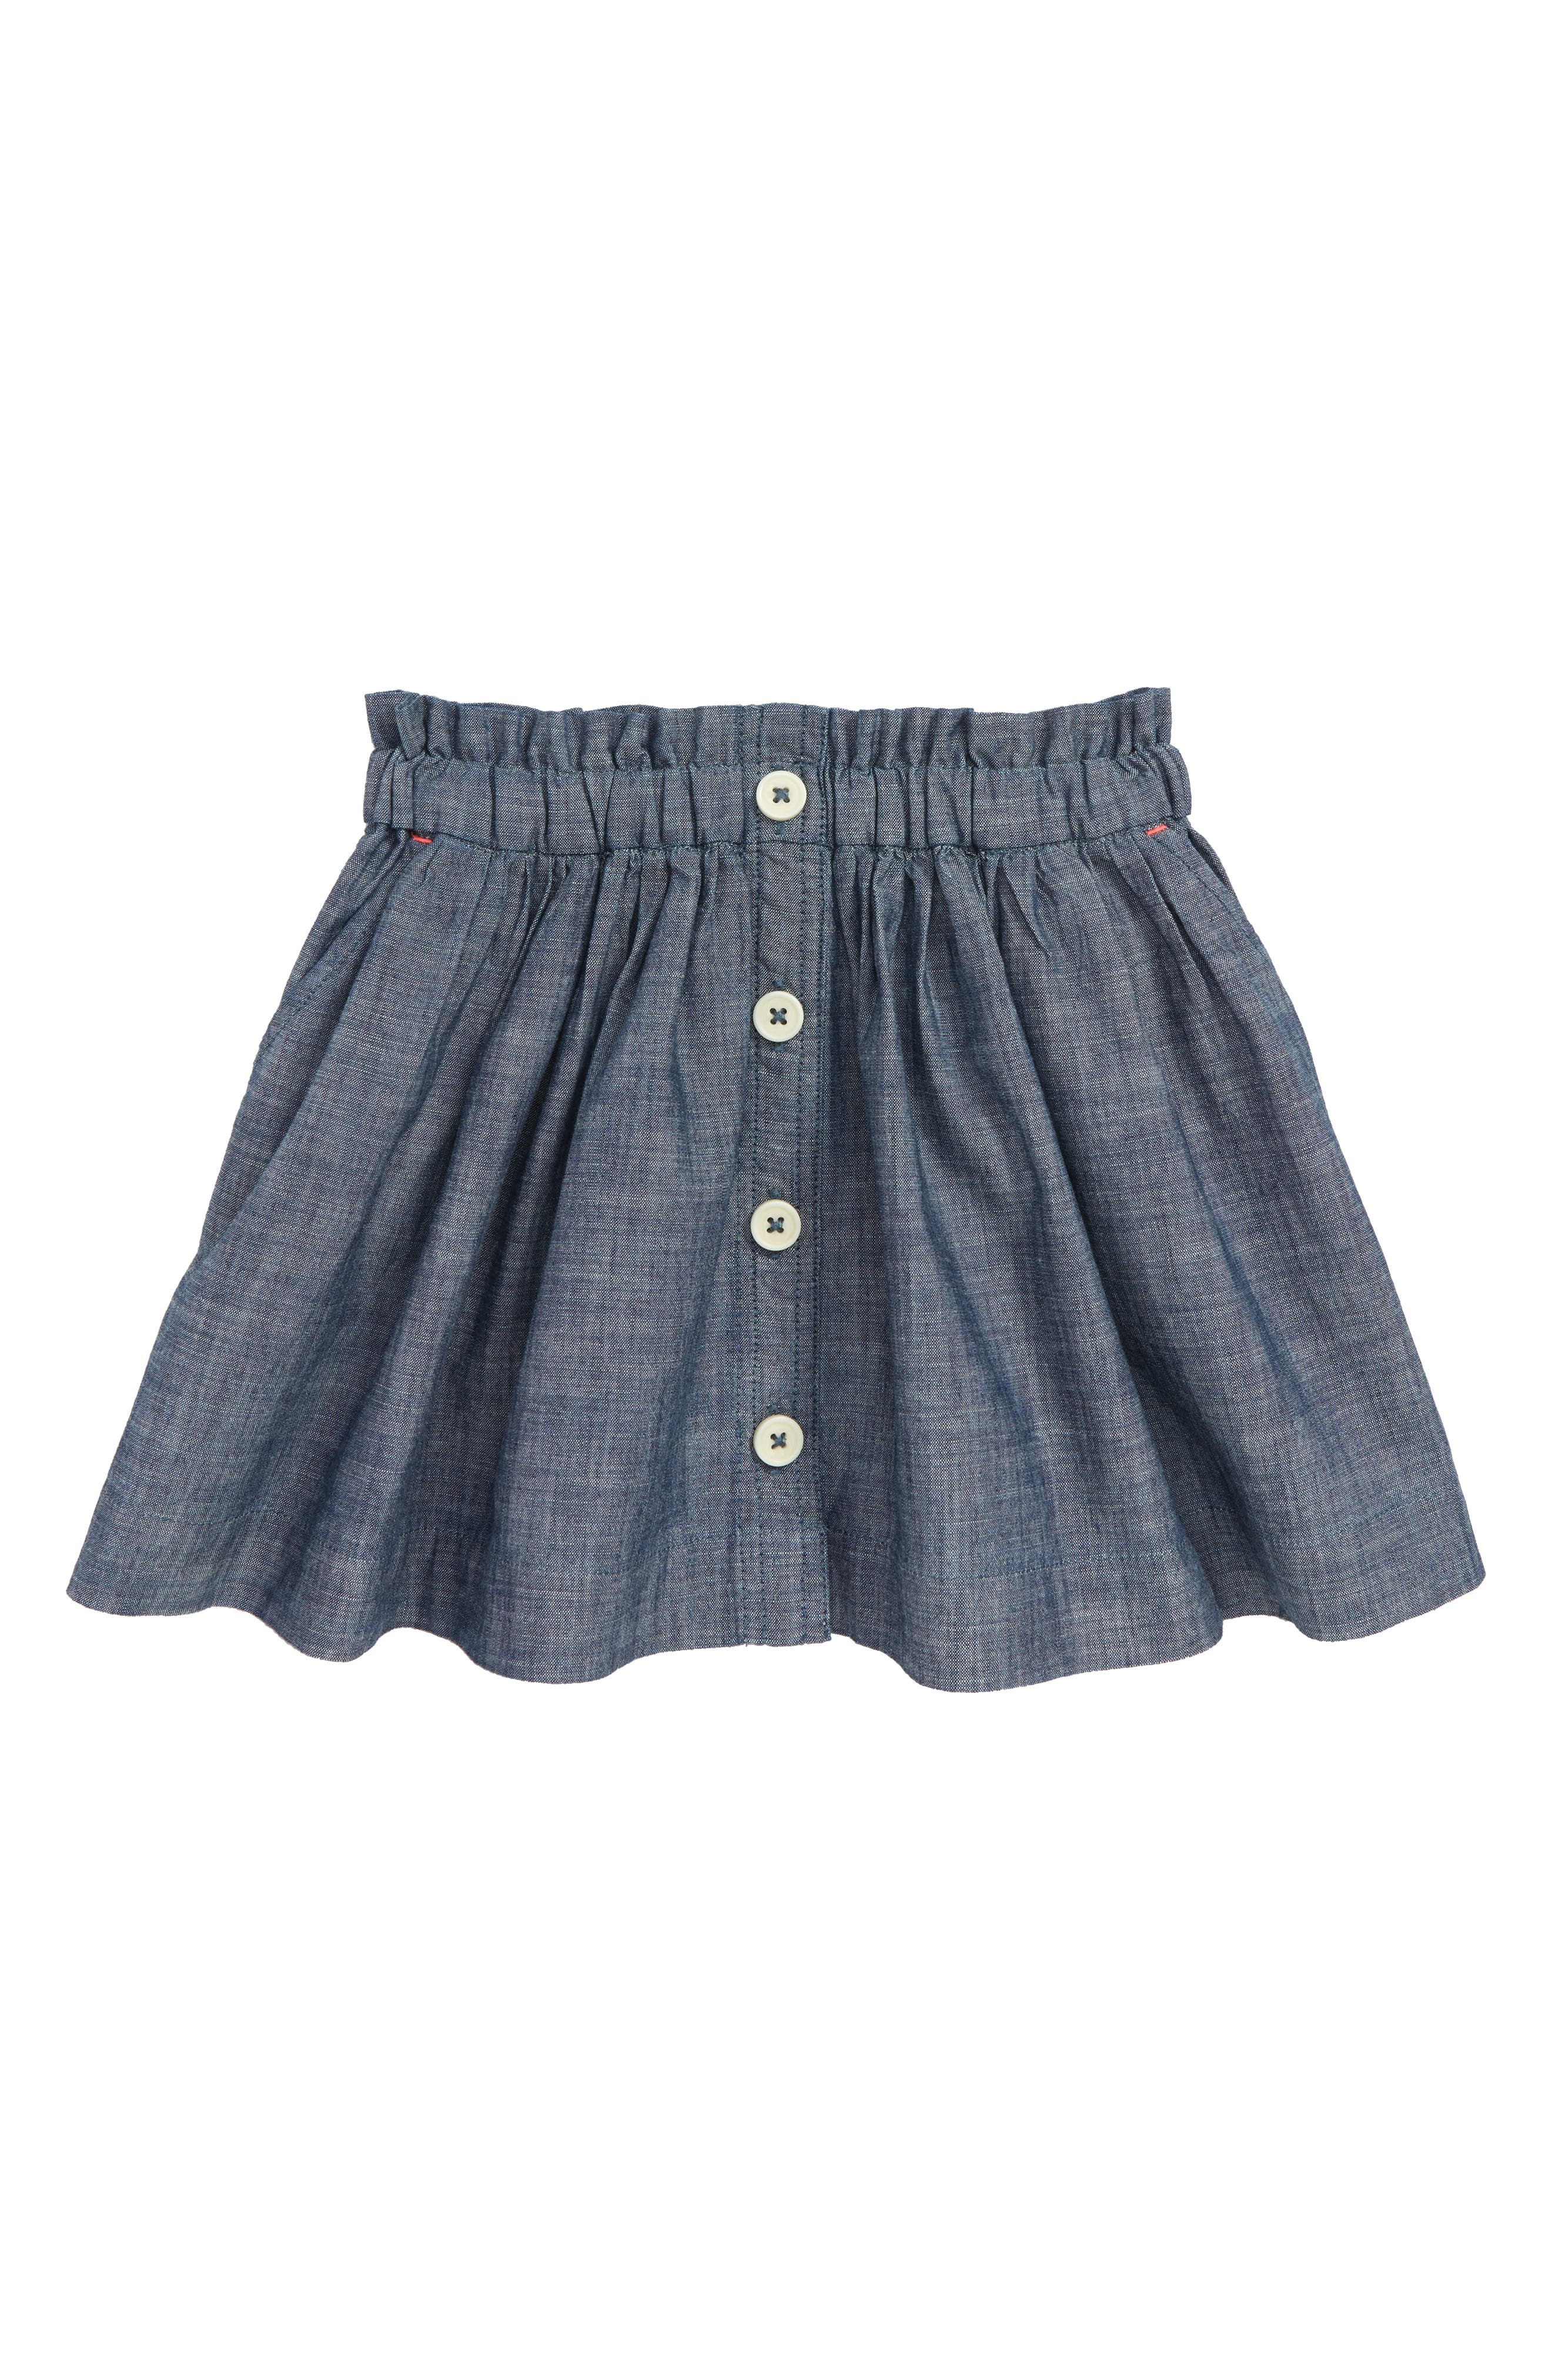 Chambray Button Front Skirt,                         Main,                         color, 400